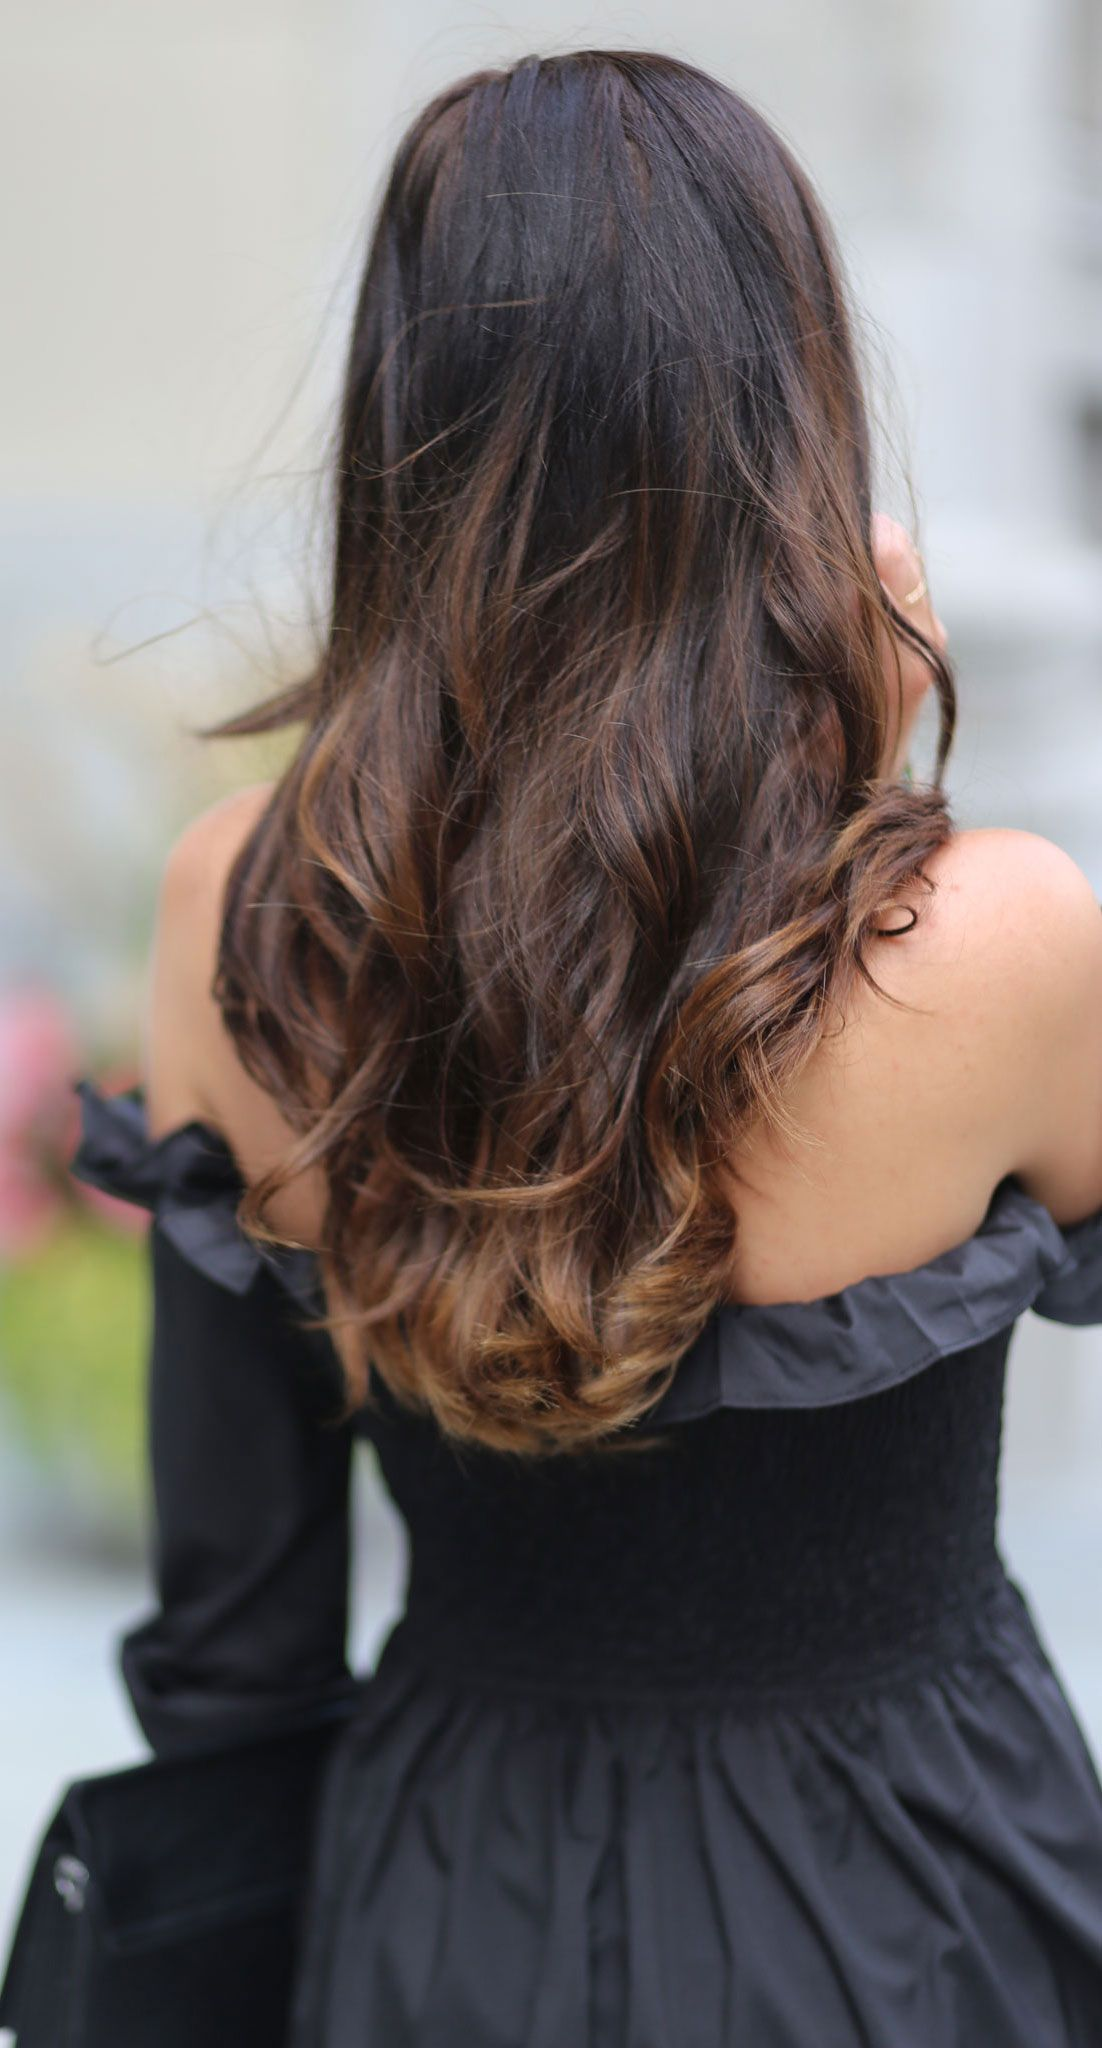 Wavy long ombre hair goals most perfect curls for long brown hair